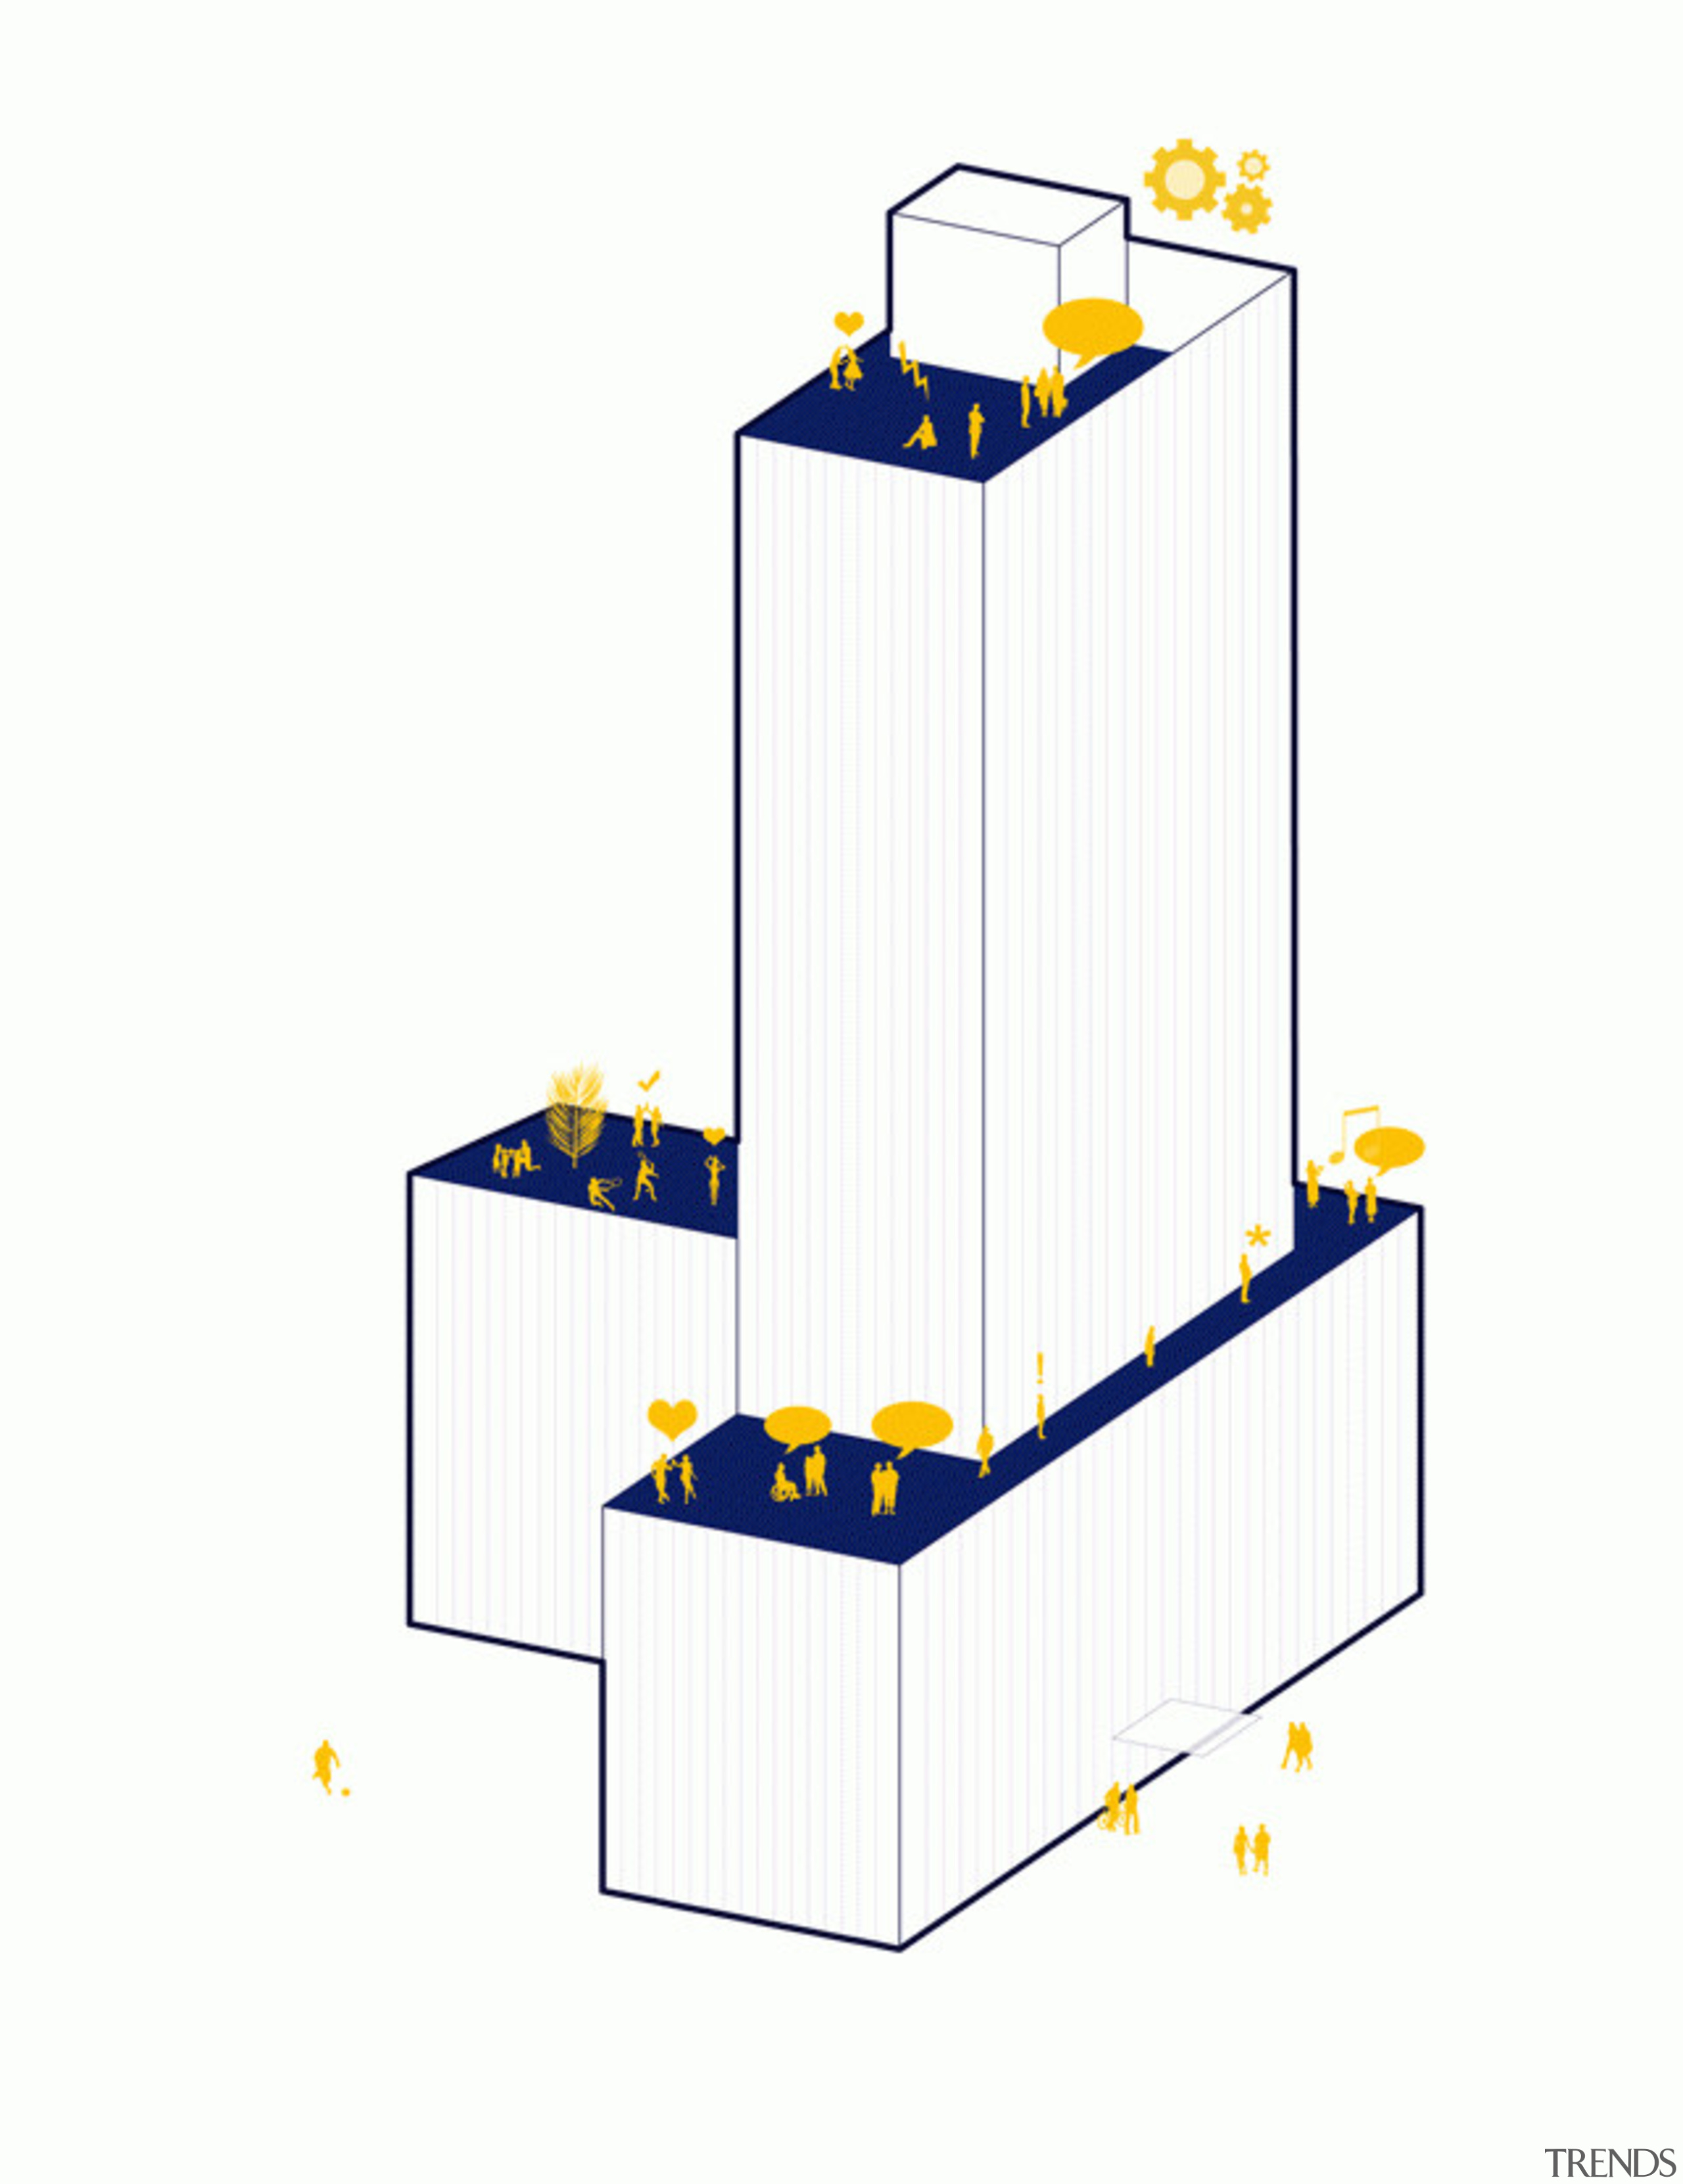 10_gif.gif - area | diagram | line | area, diagram, line, material, product, product design, technology, white